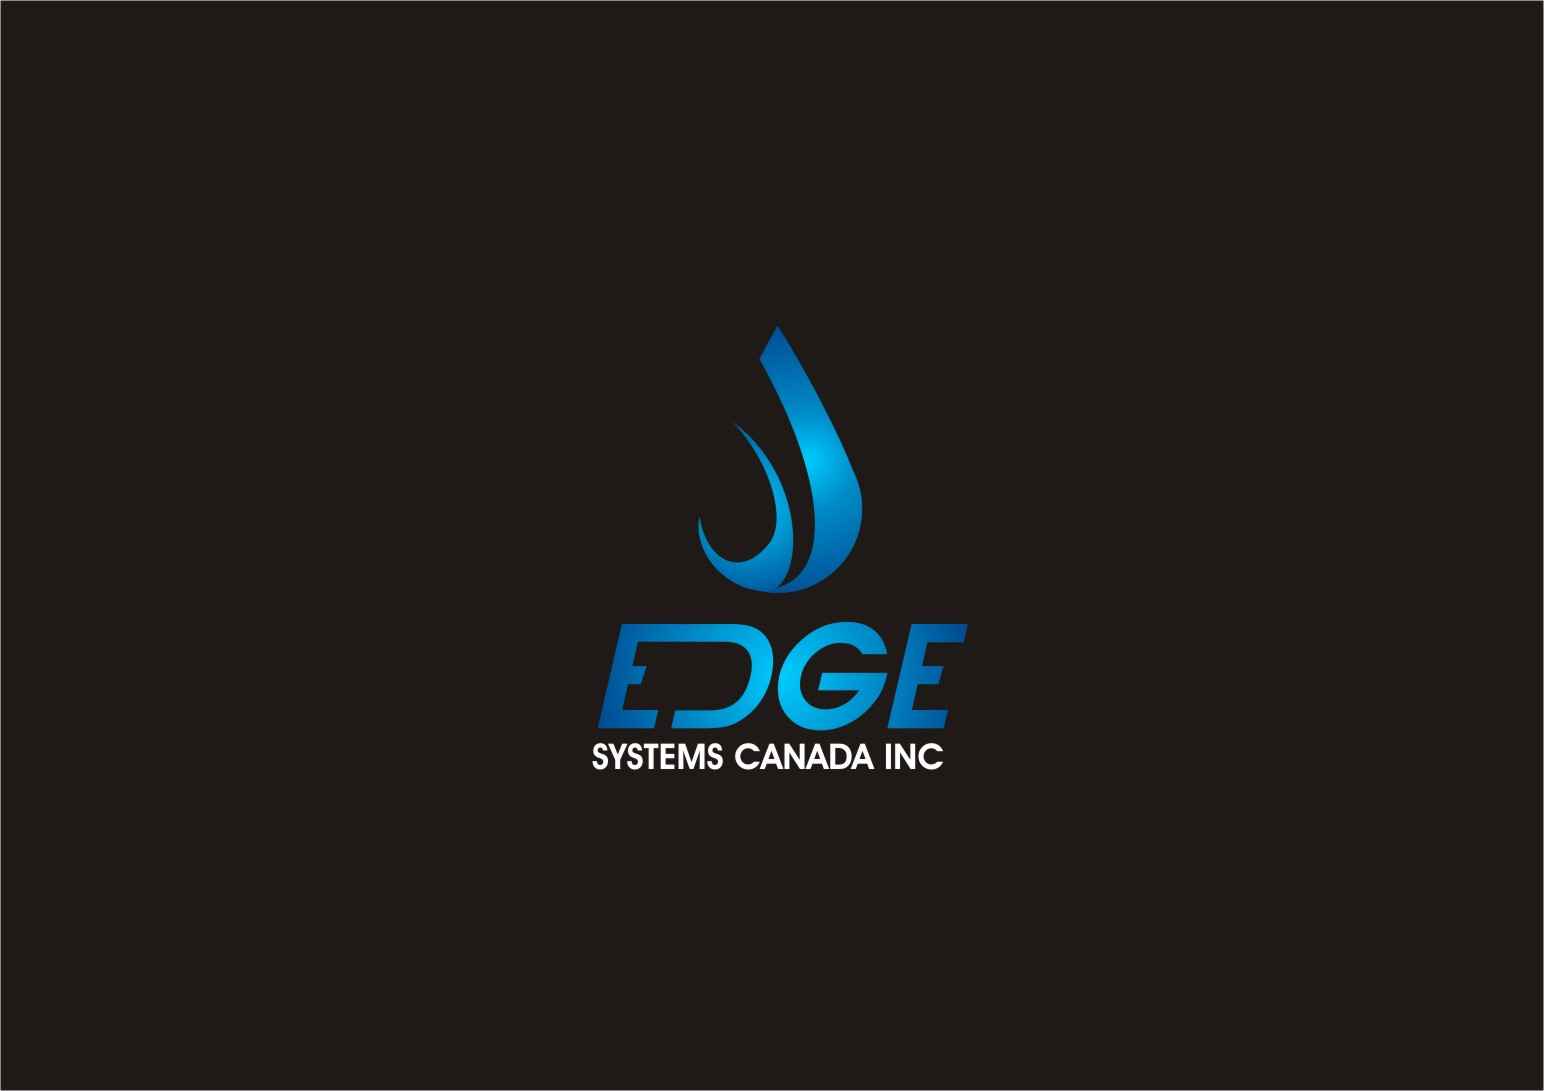 Logo Design by yanxsant - Entry No. 26 in the Logo Design Contest New Logo Design for Edge Systems Canada Inc.